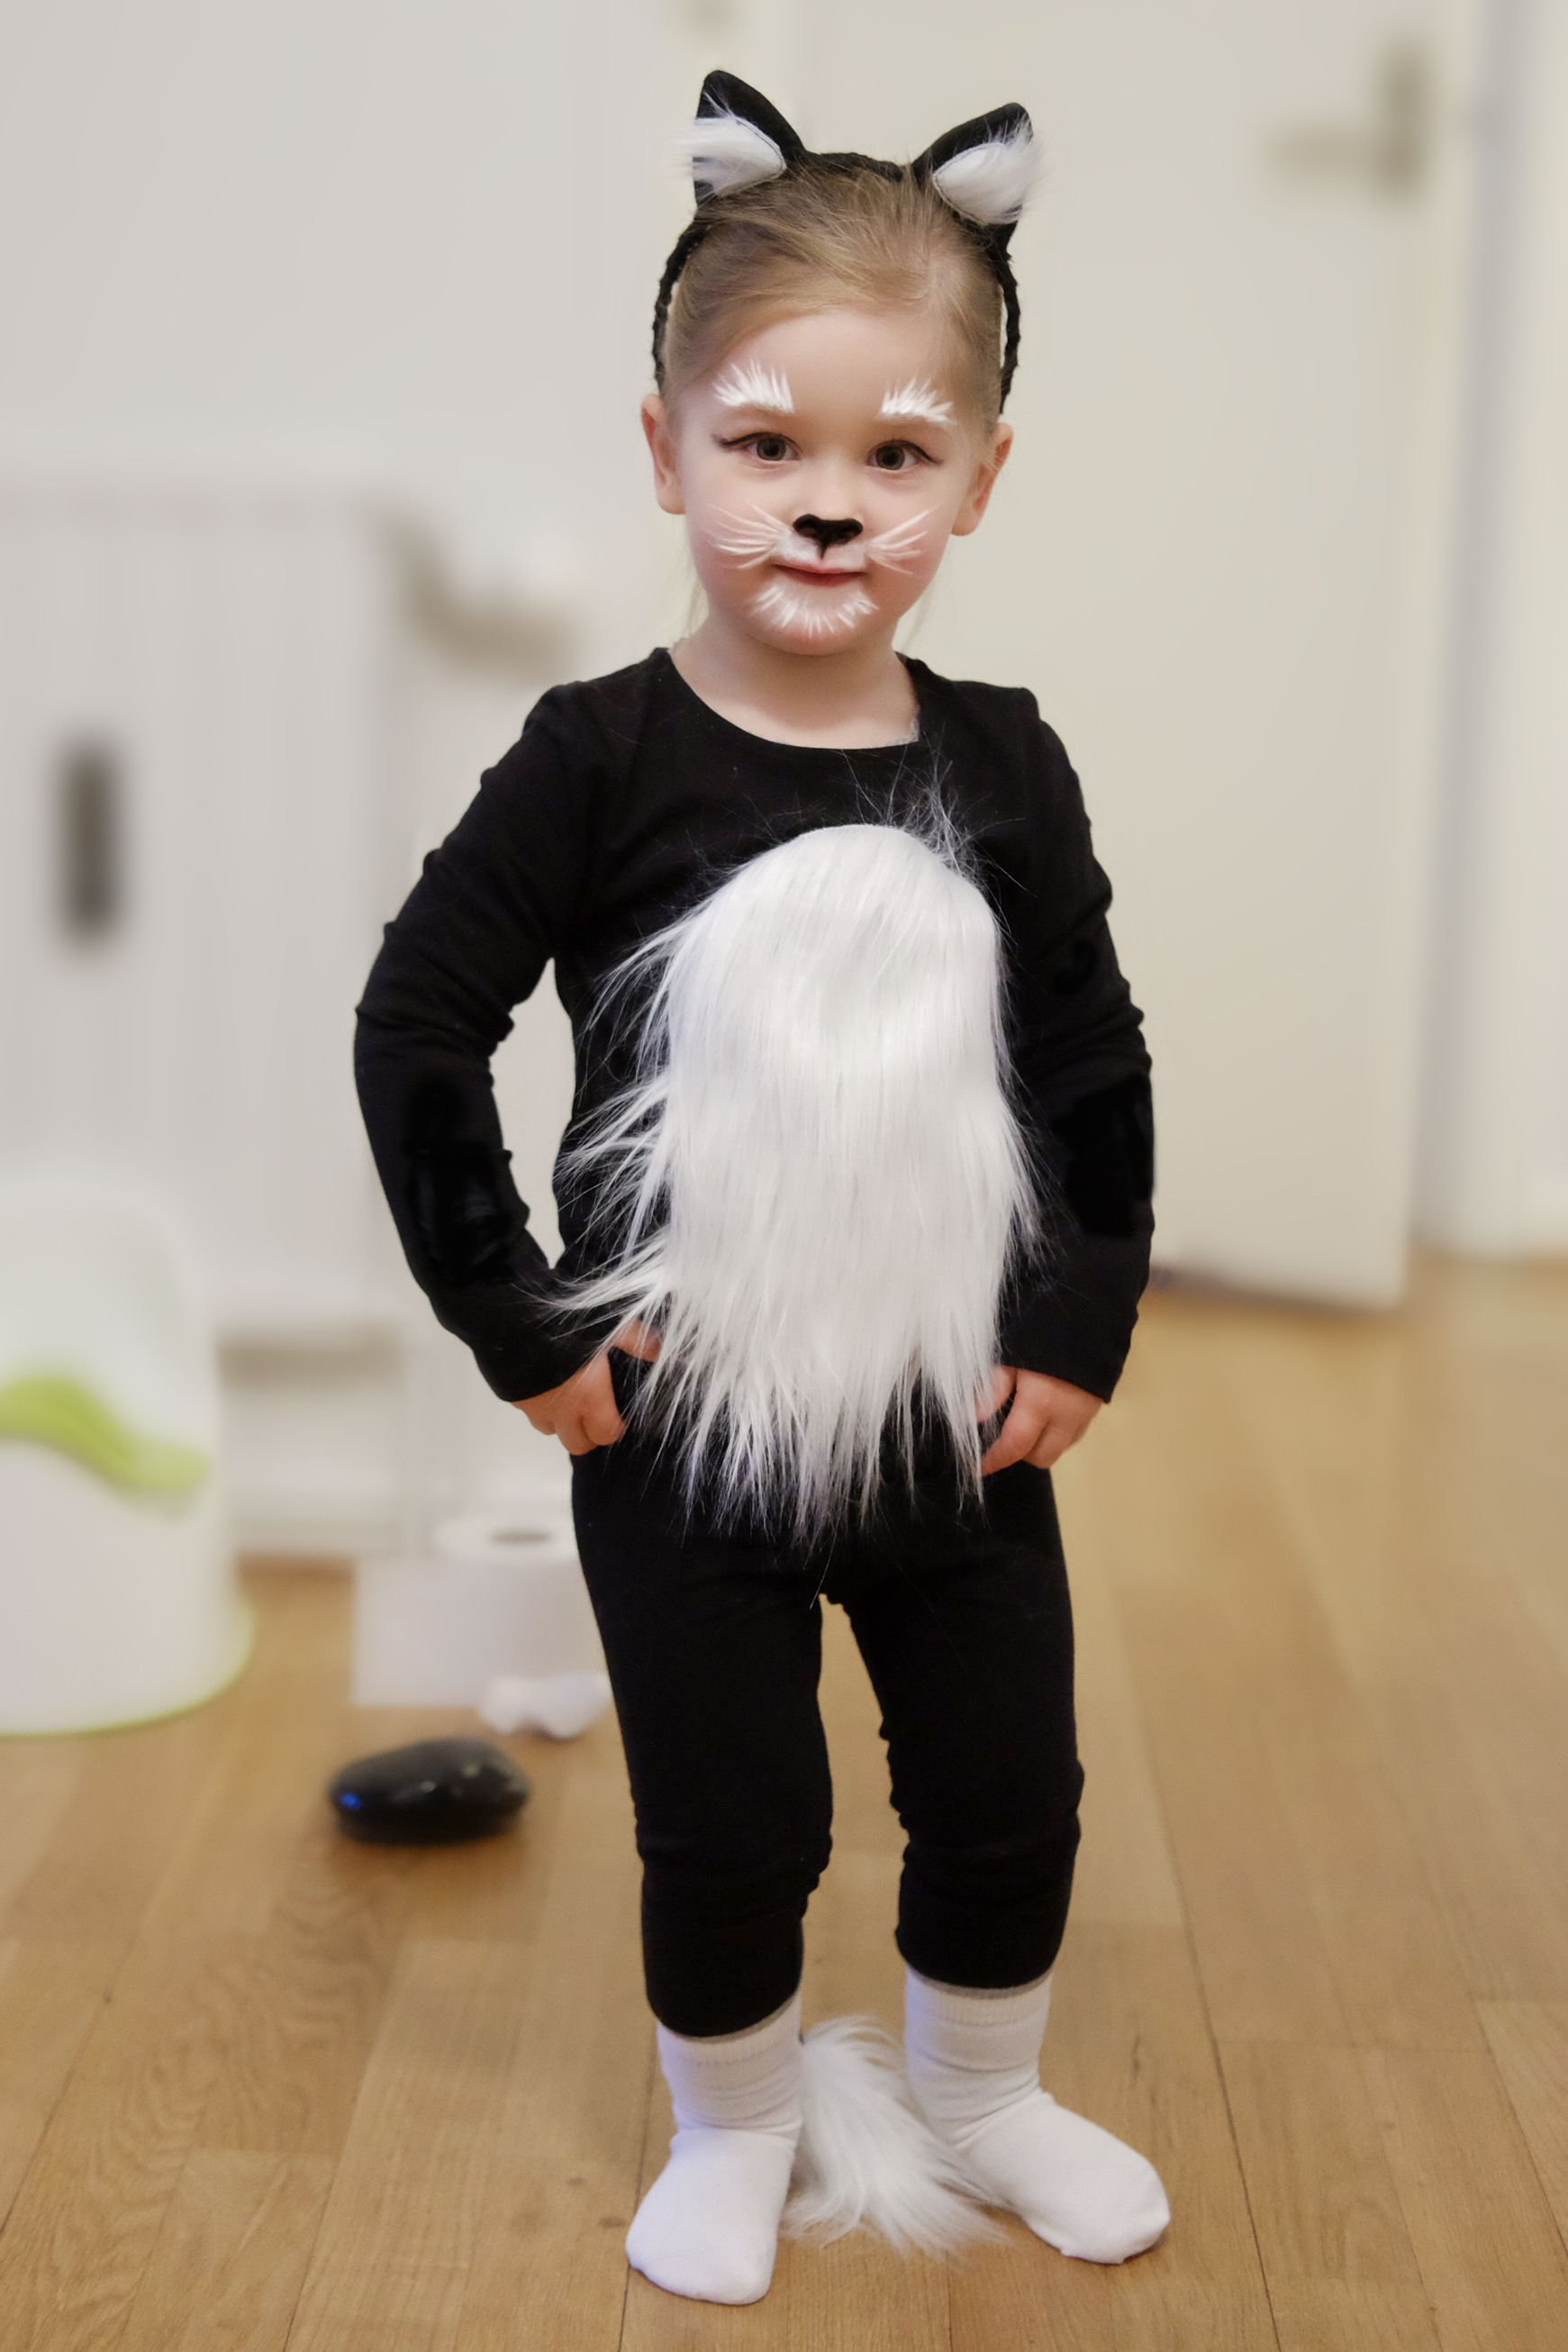 Diy Cat Costume Face Paint Step By Step Thinking Dreams In 2020 Cat Costume Diy Diy Girls Costumes Cat Halloween Costume